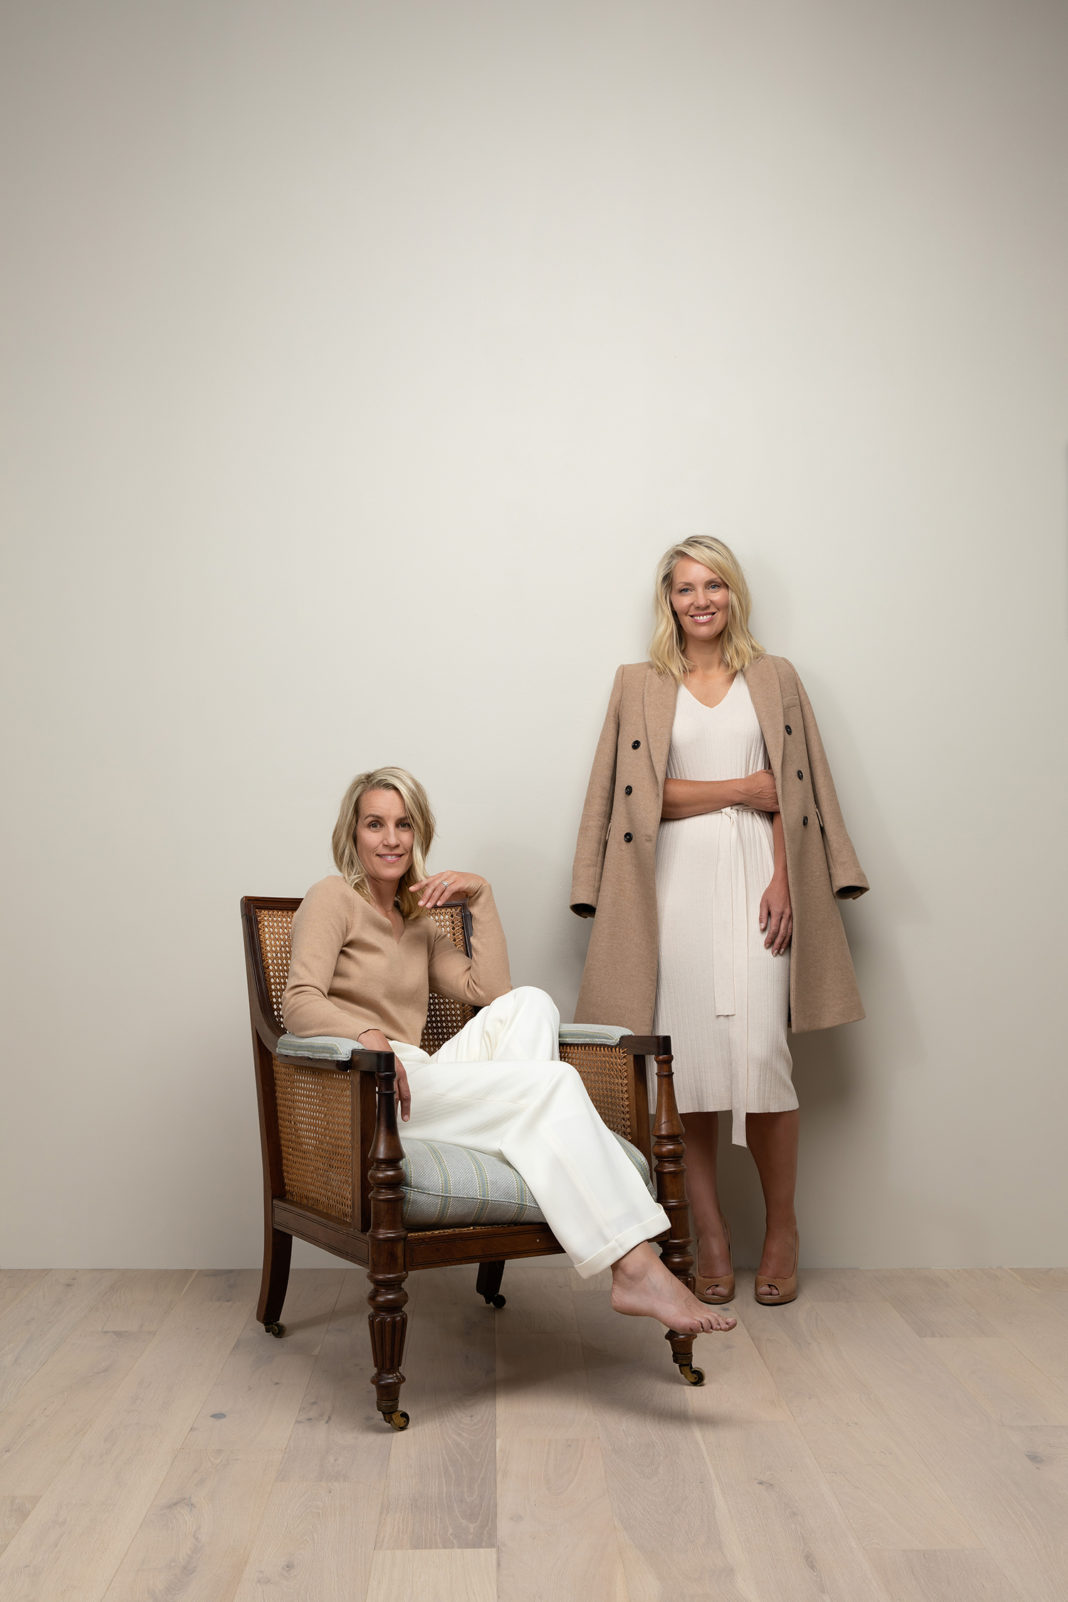 Kimberly Rasmussen and Elizabeth Wixom Johsen, founders, co-owners, and principle designers at Establish Design